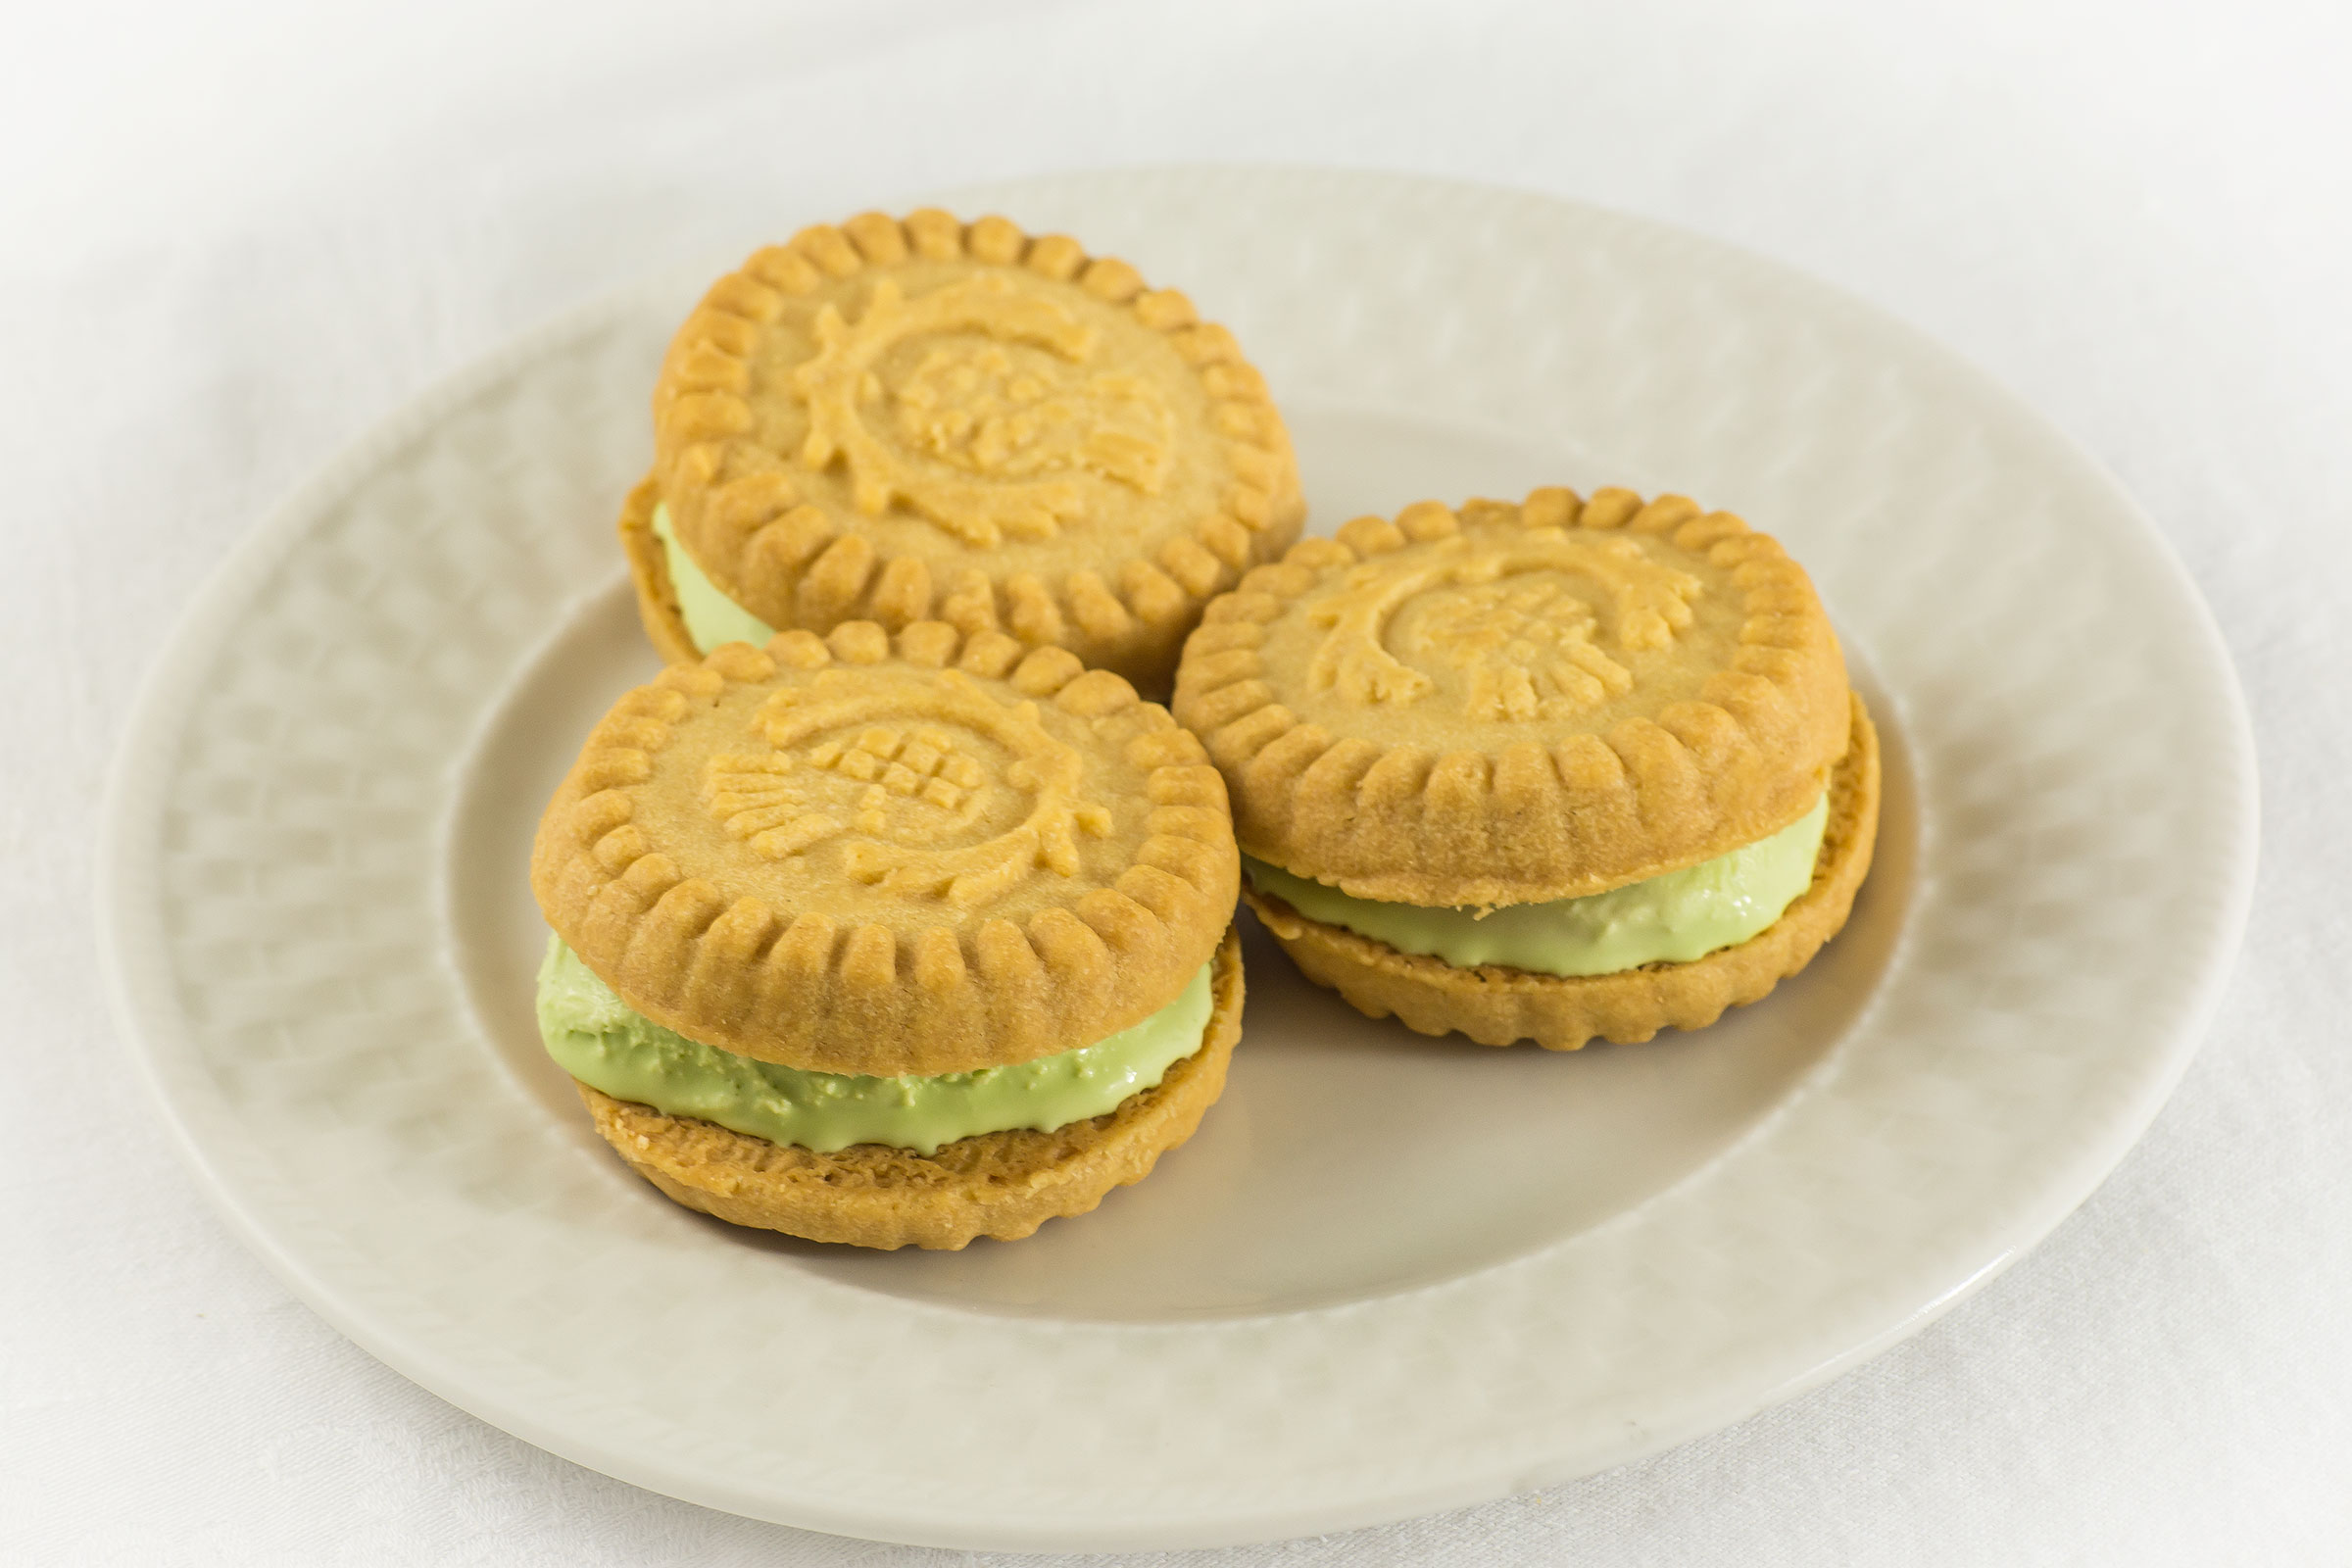 ... Simplified With Classic Walkers Shortbread - The Daily Tea